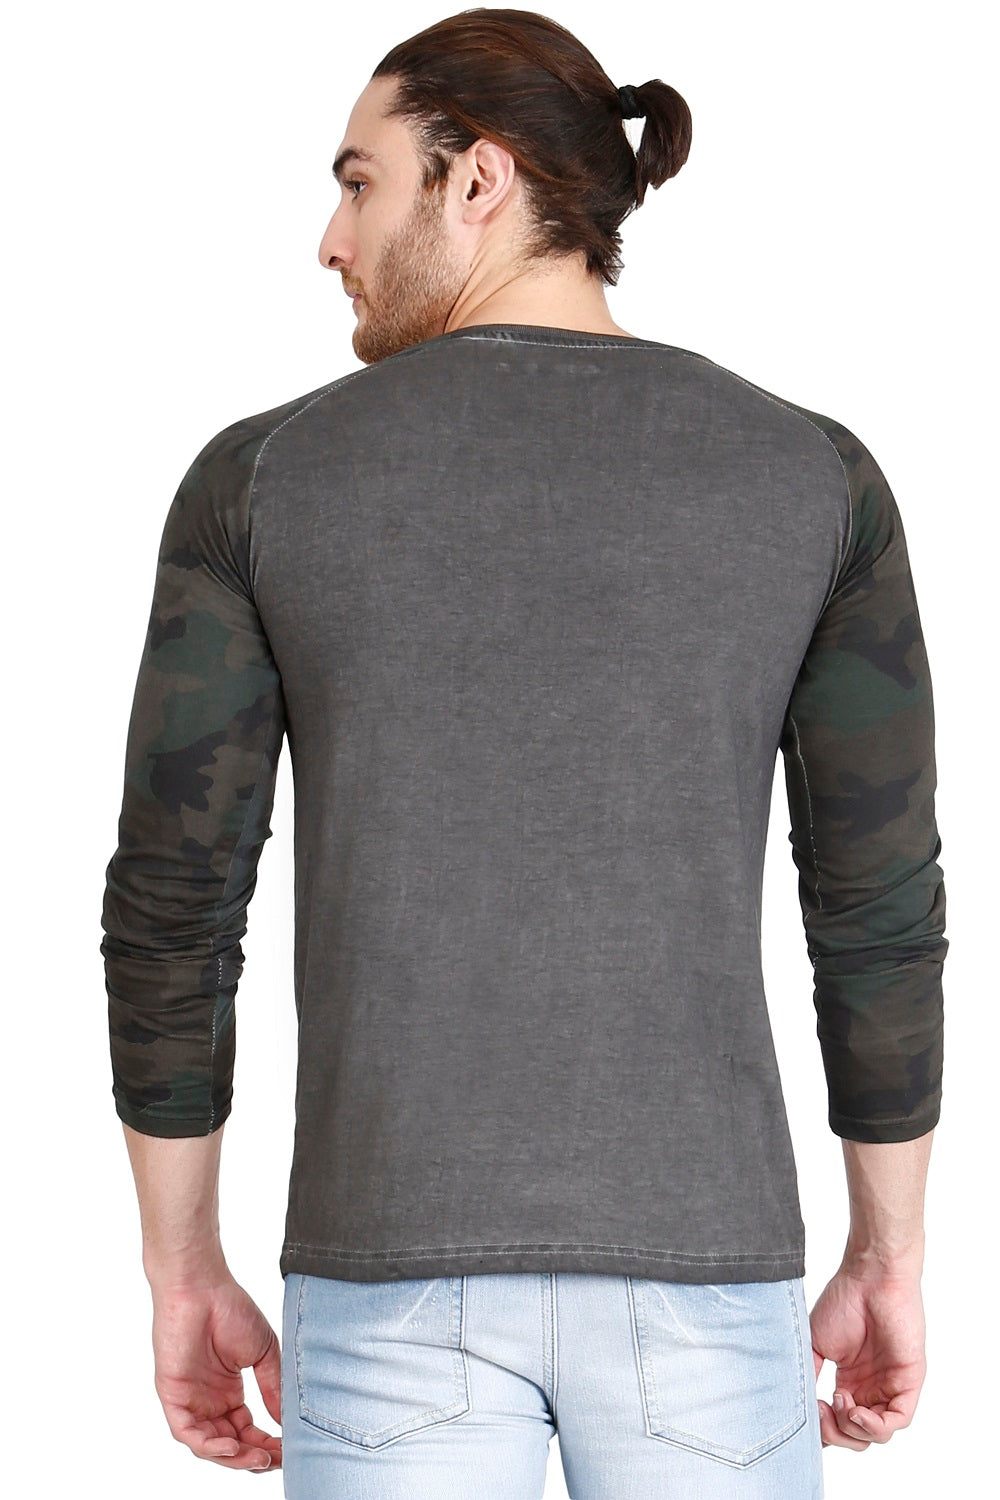 Hunt and Howe Men's Overdyed Full Sleeves T-Shirt